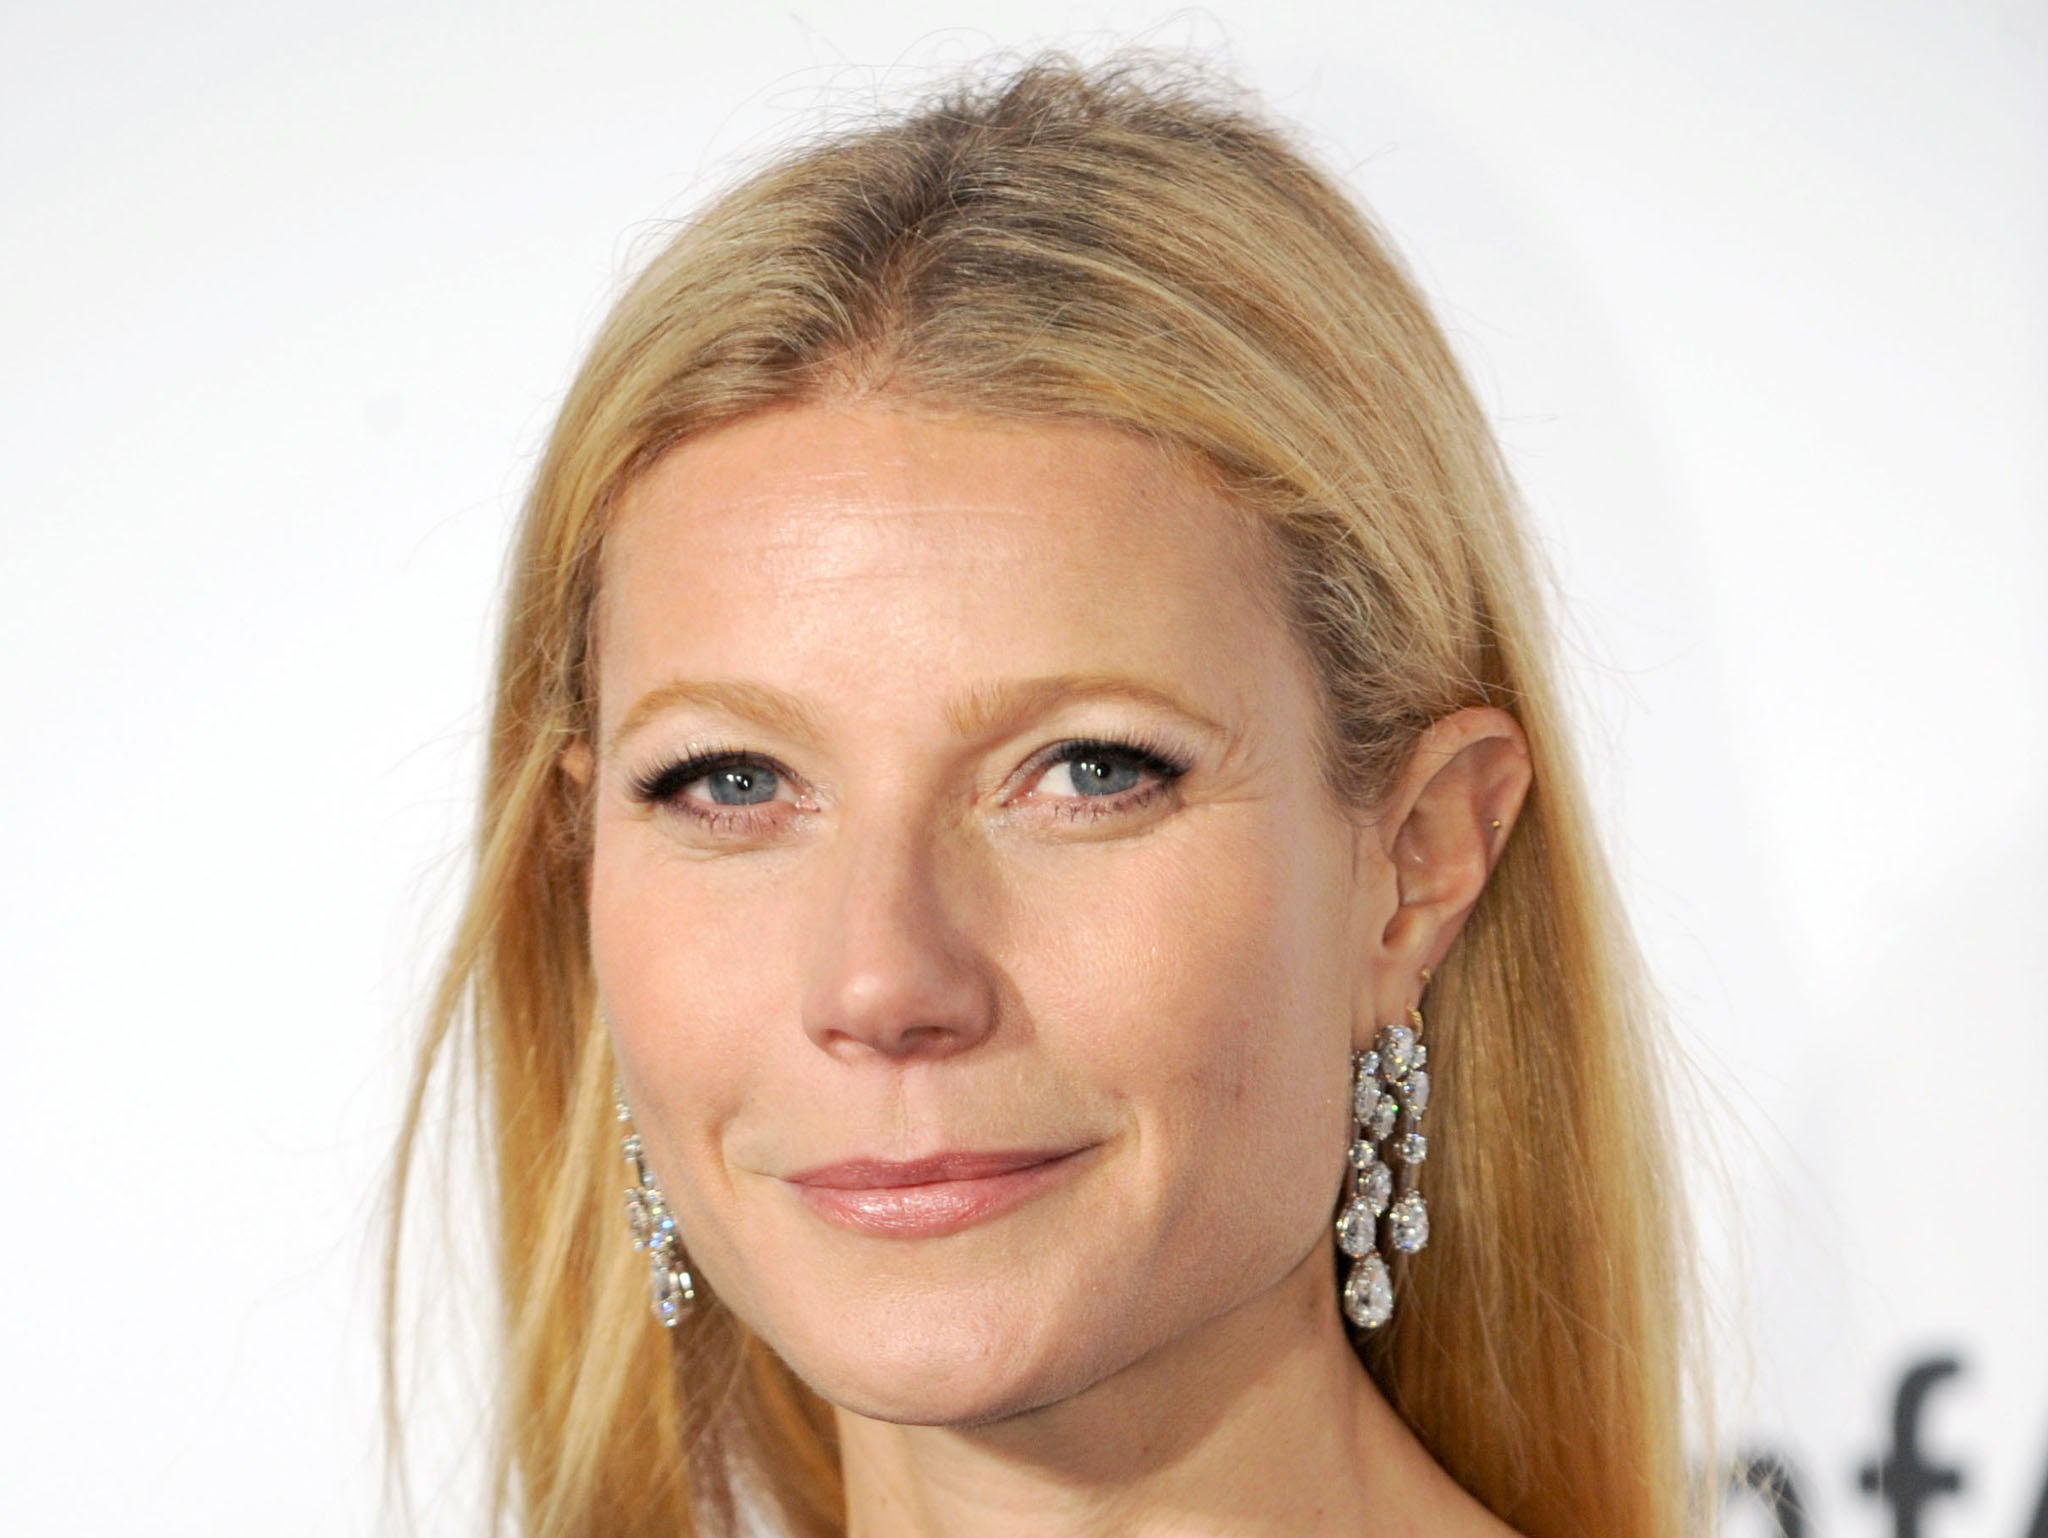 gwyneth paltrow 2015 dating In recent years, actress gwyneth paltrow has faced her fair share of personal  hurdles, including a highly publicized split with coldplay  published 11/11/2015.